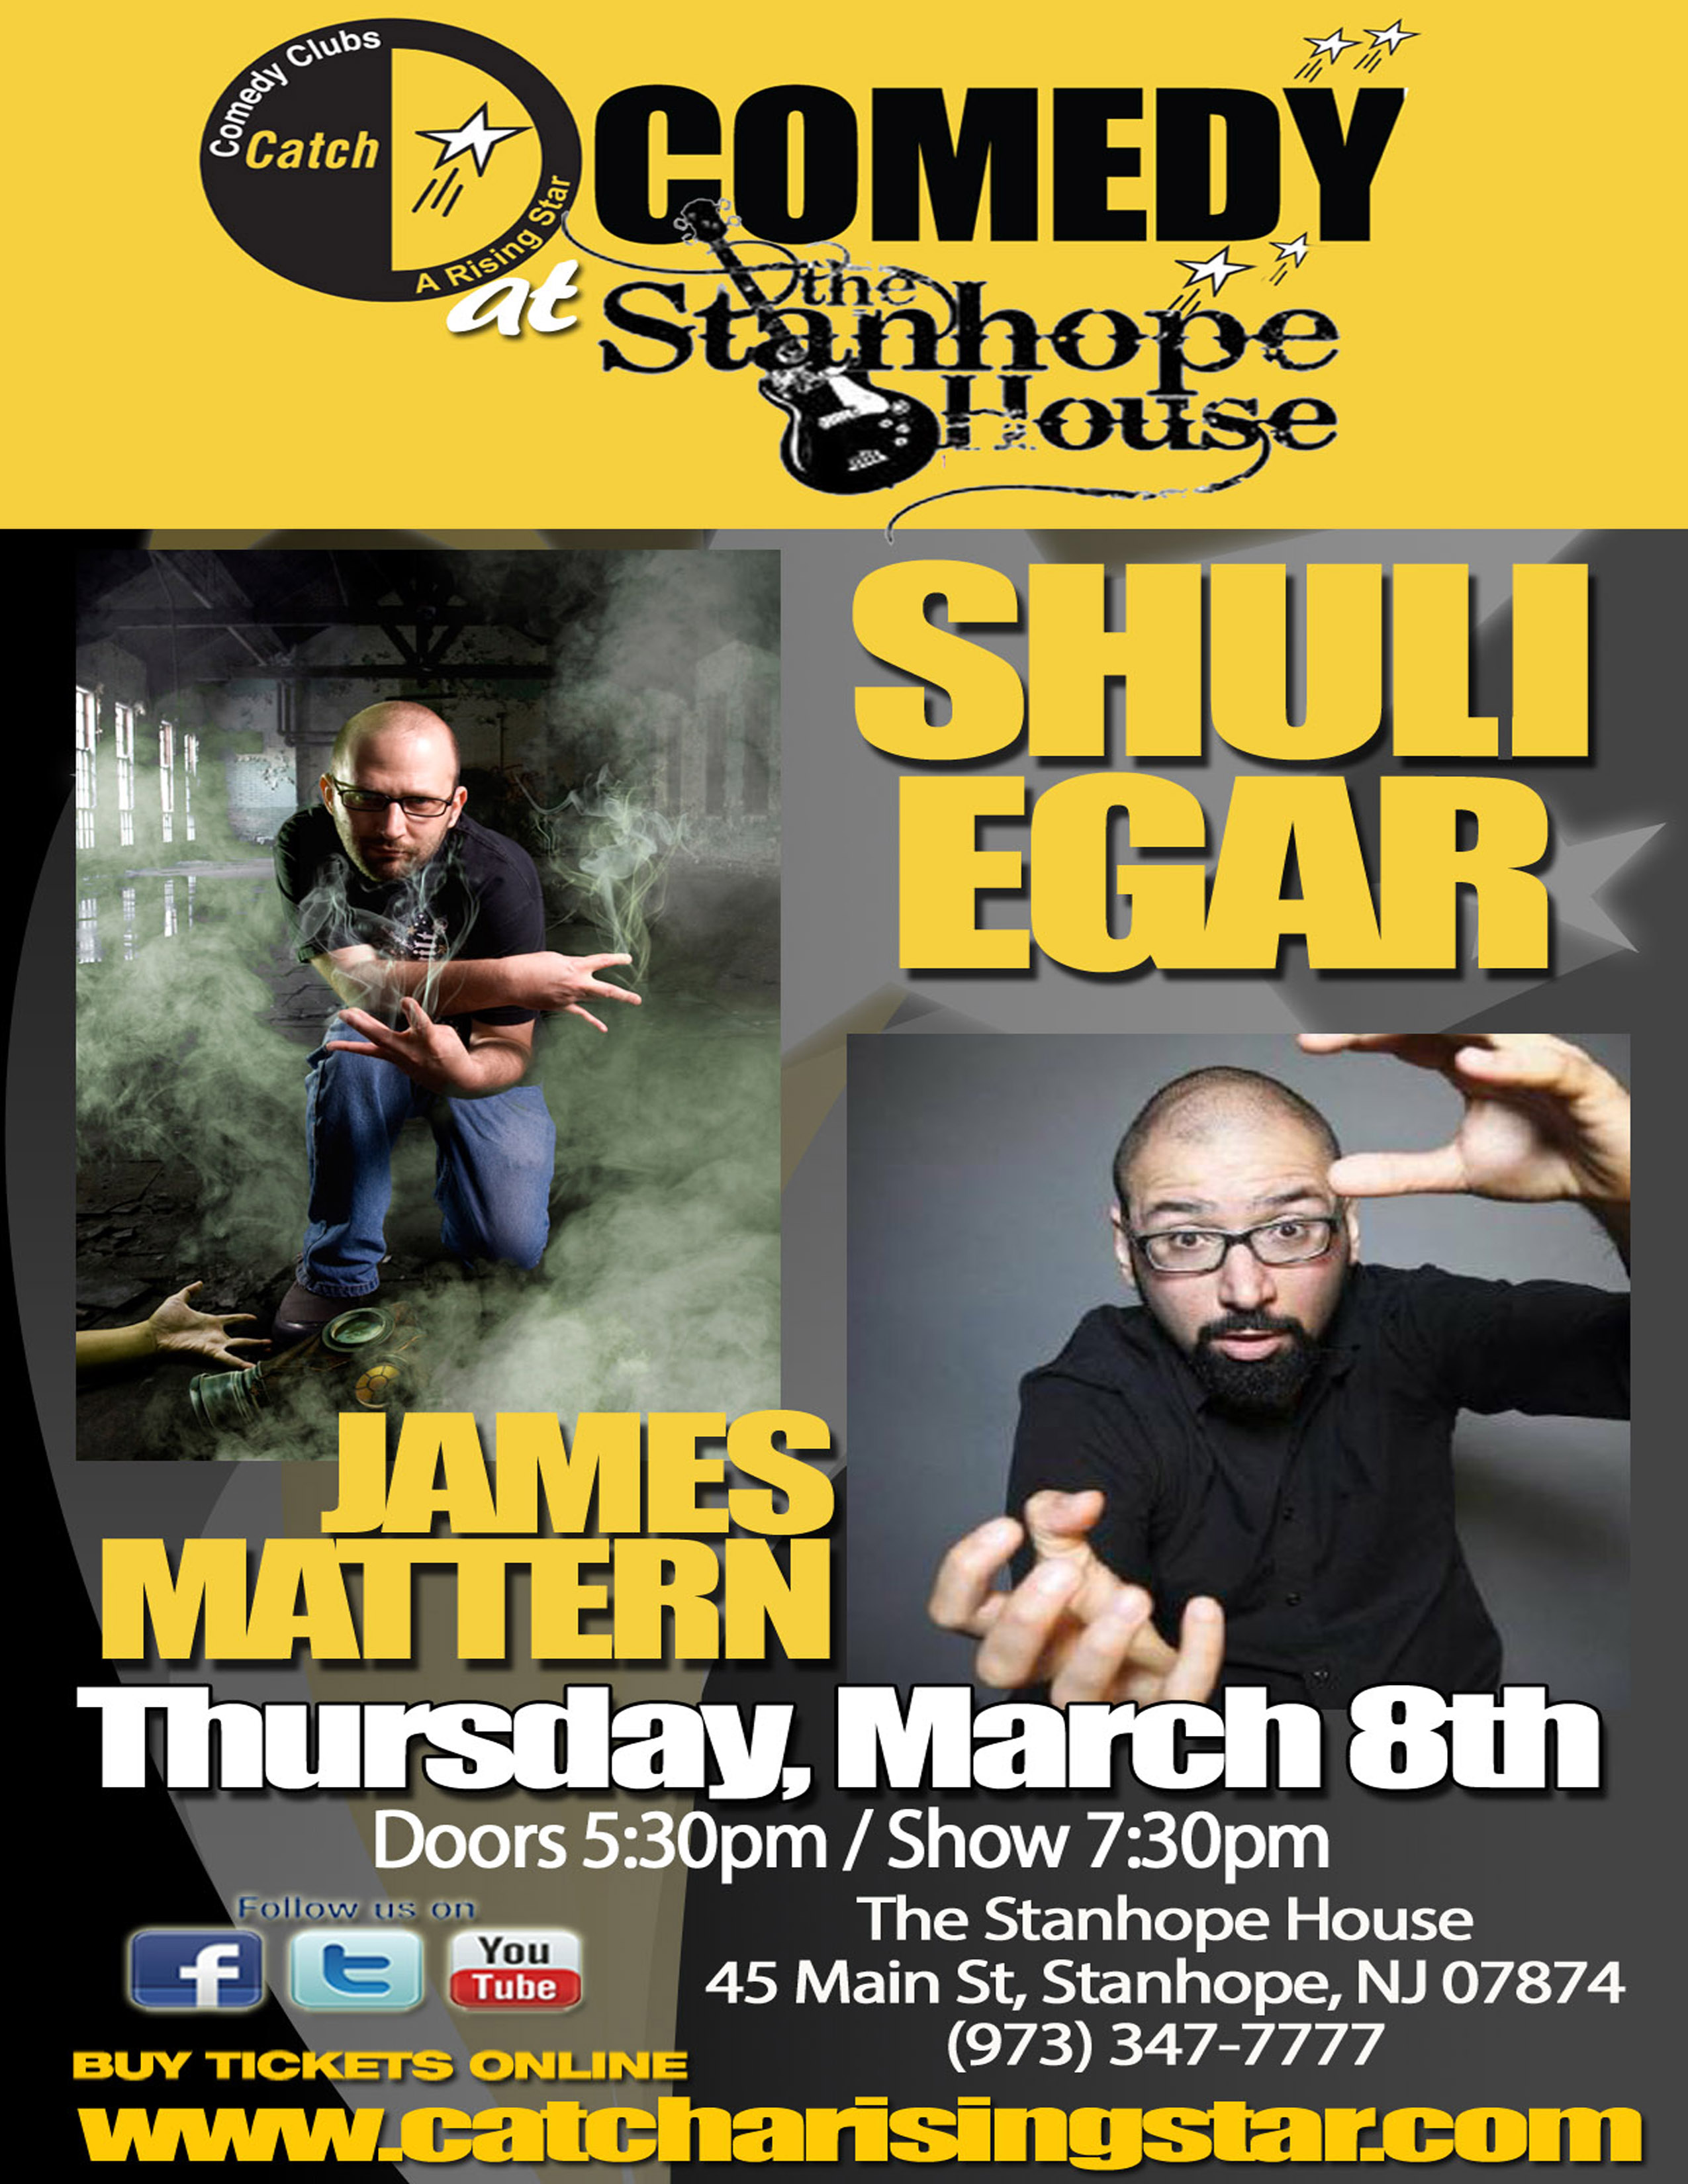 Shuli Egar and James Mattern at The Stanhope House